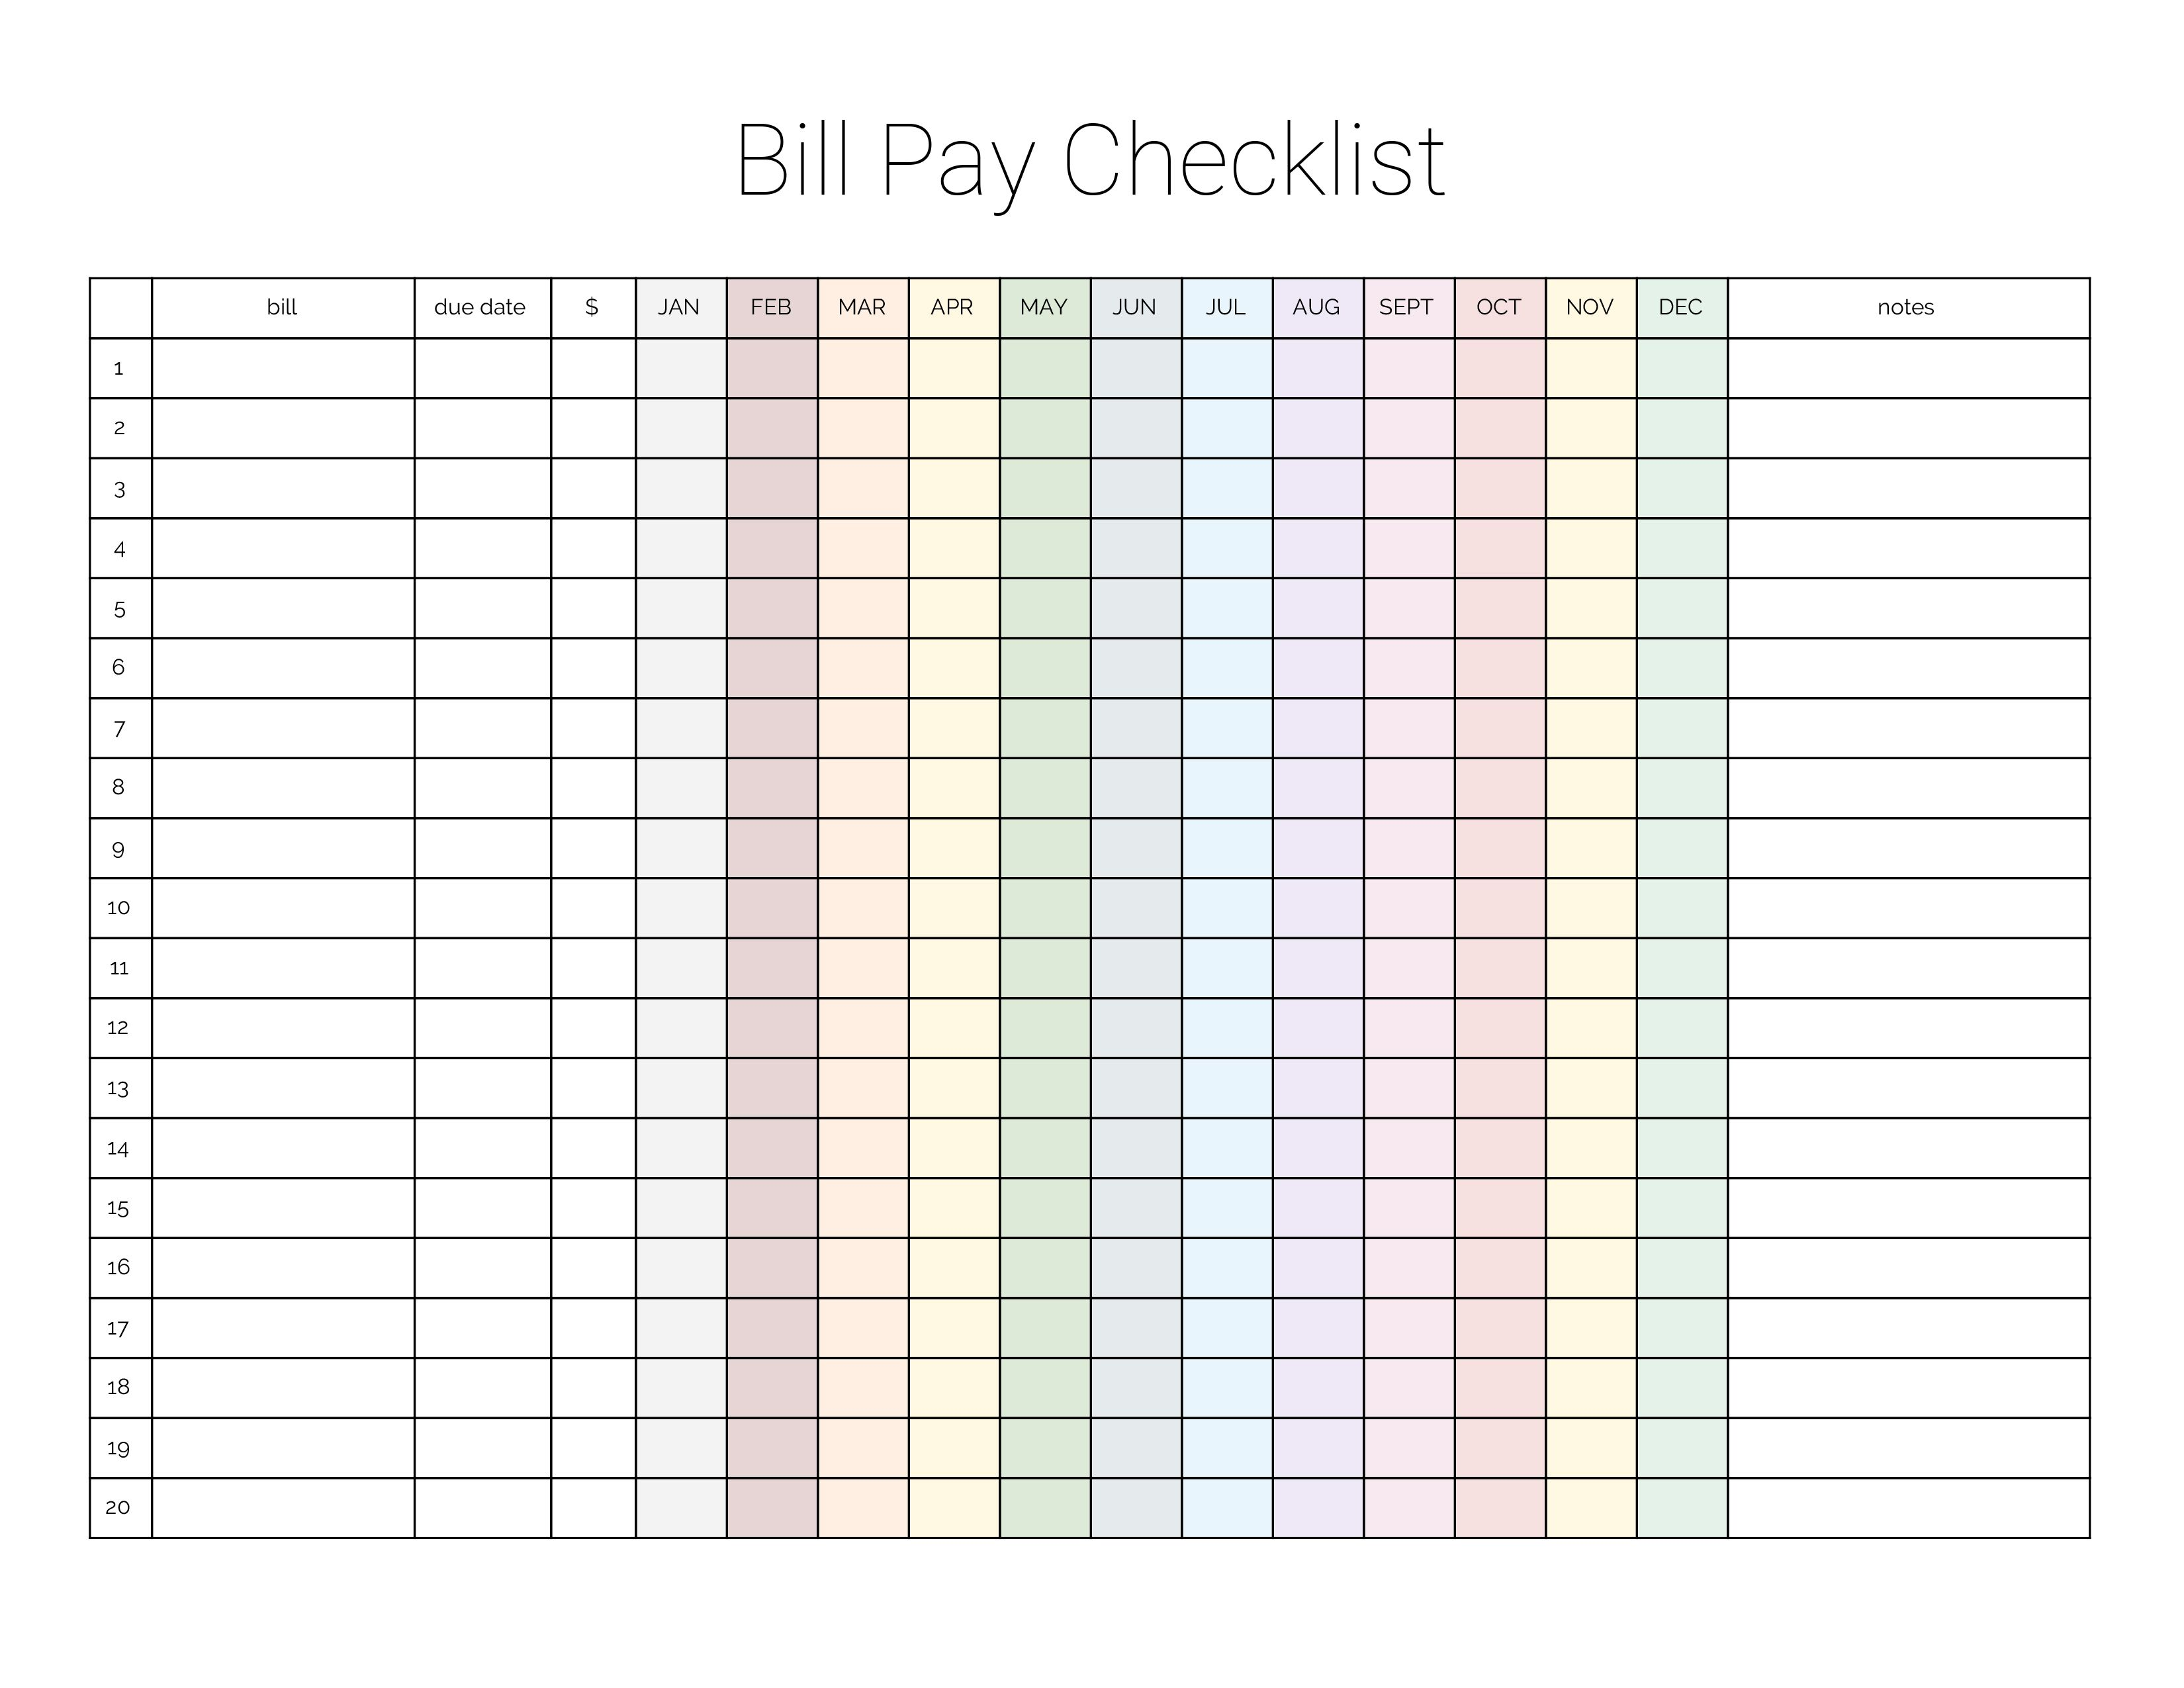 Monthly Bill Payment Checklist Printable Million Ways To Mother Bill Payment Checklist Bill Pay Checklist Paying Bills Monthly bill due date template